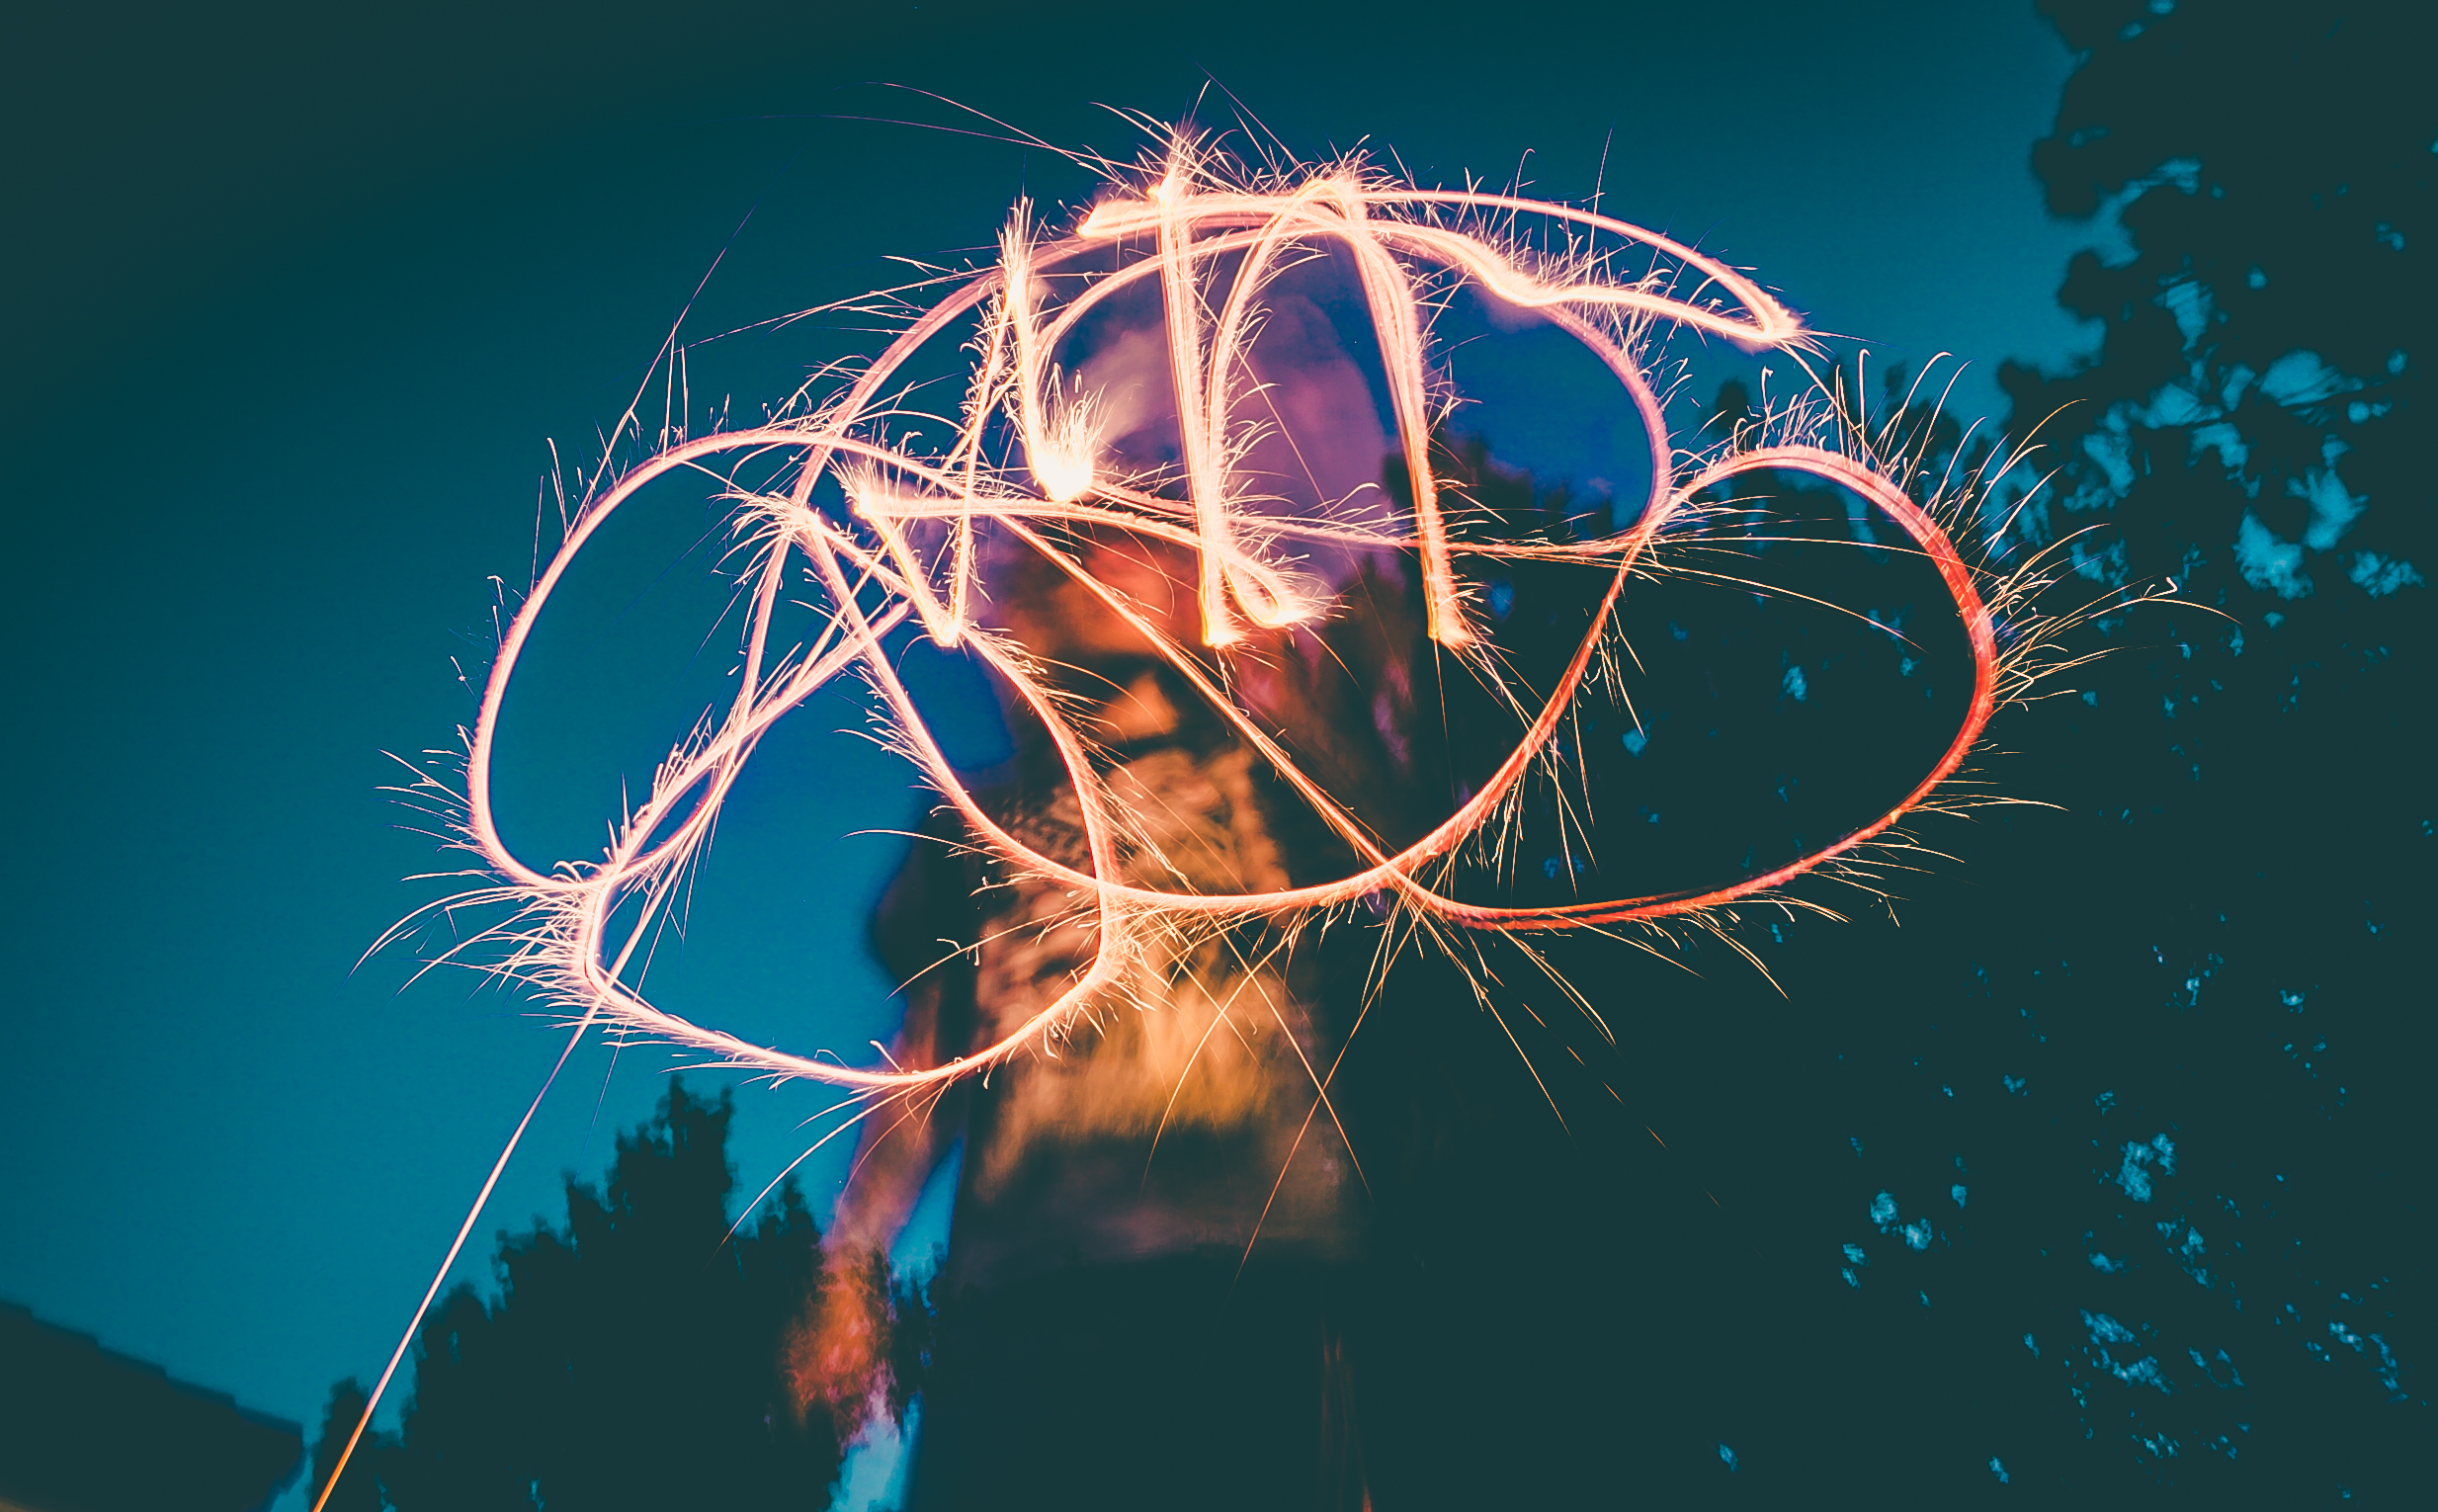 Plan a 4th of July Party. Get the best party trends and party planning tools. LYFETYMES is the #1 party planning site #partyplanning #4thofjulyparty #celebration #july4thparty